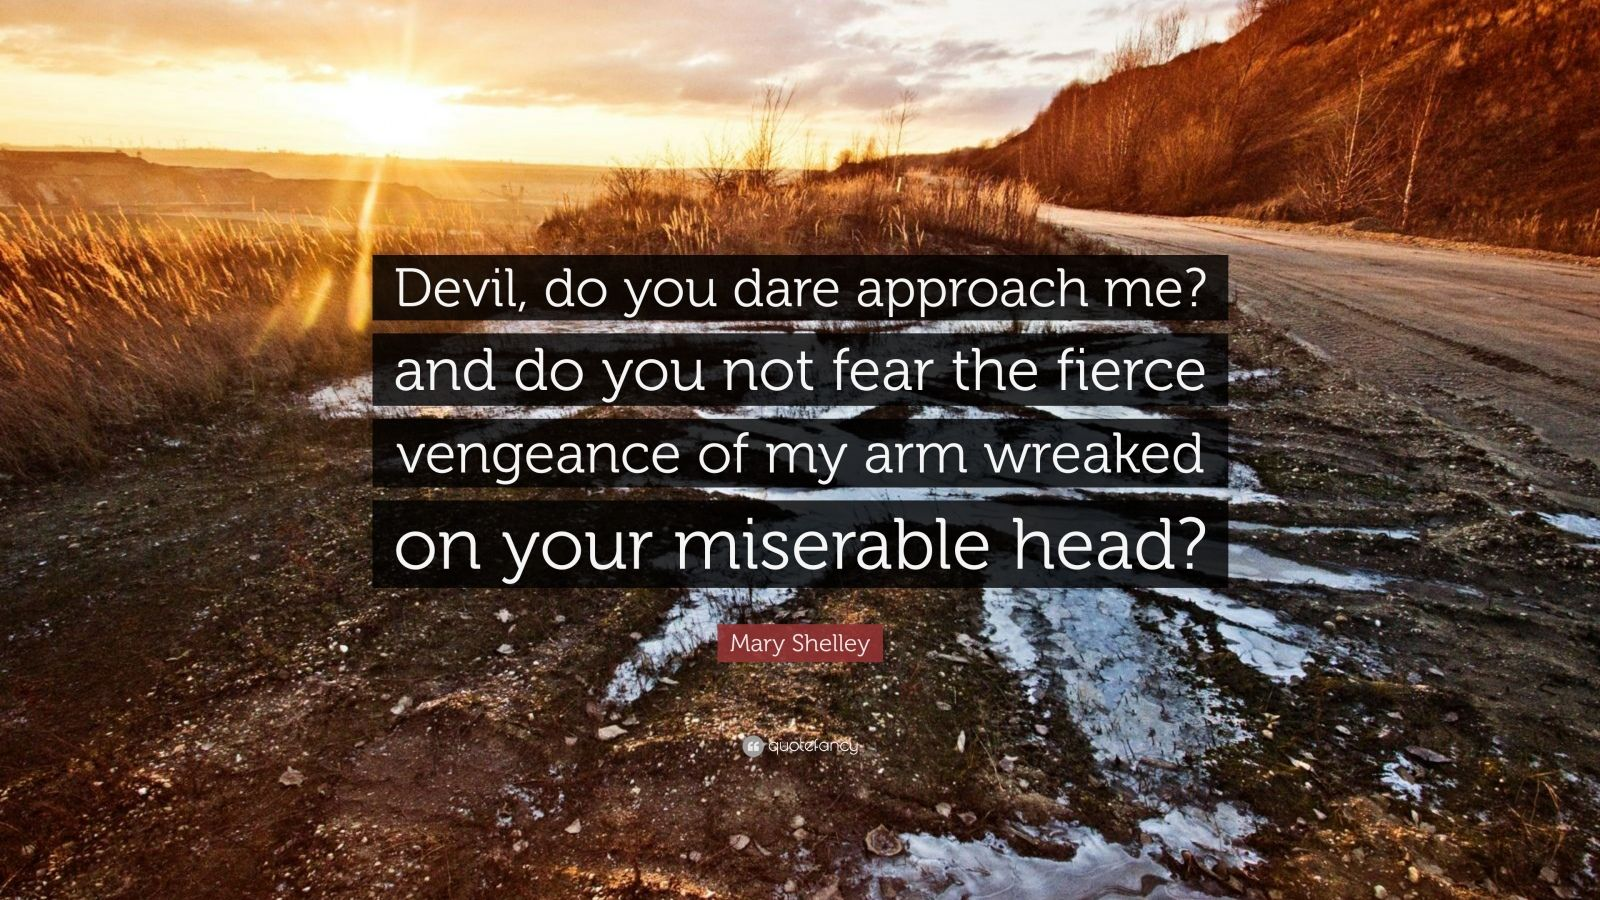 "Mary Shelley Quote: ""Devil, do you dare approach me? and do you not fear the fierce vengeance of my arm wreaked on your miserable head?"""